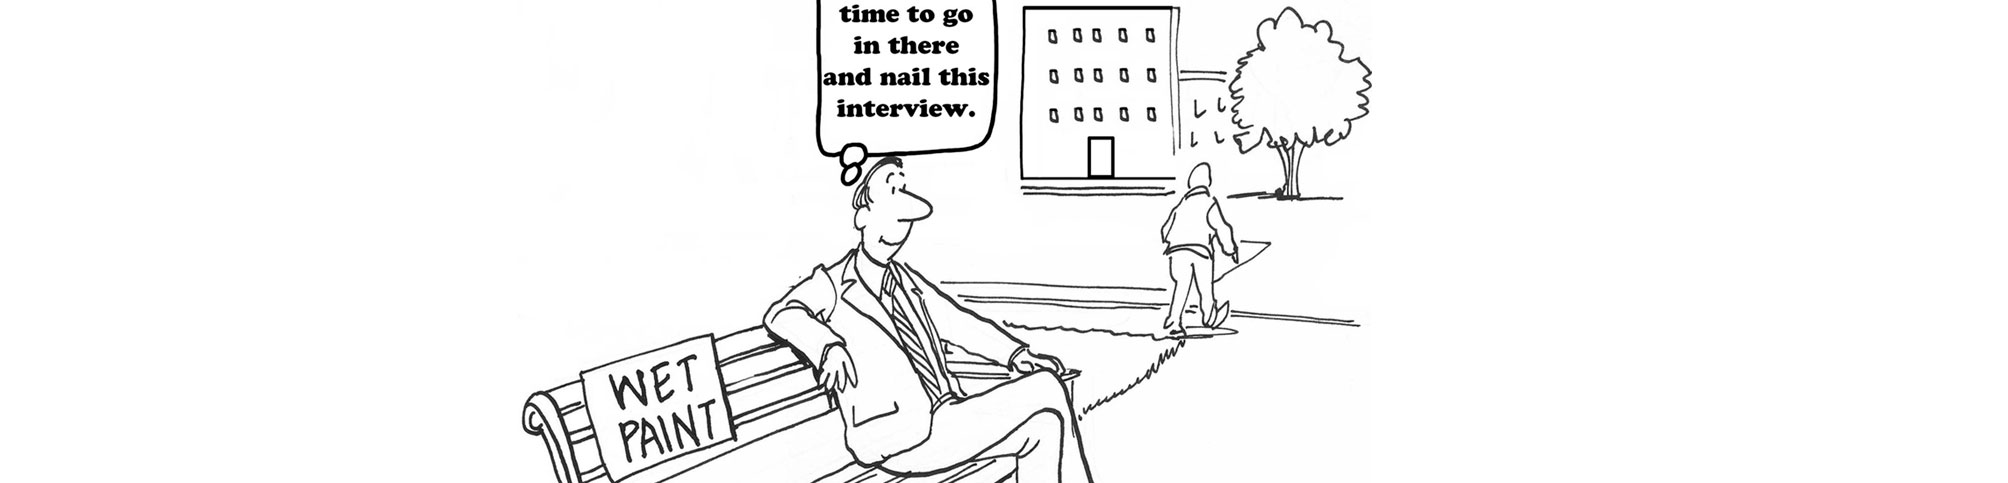 """interviewing job"""